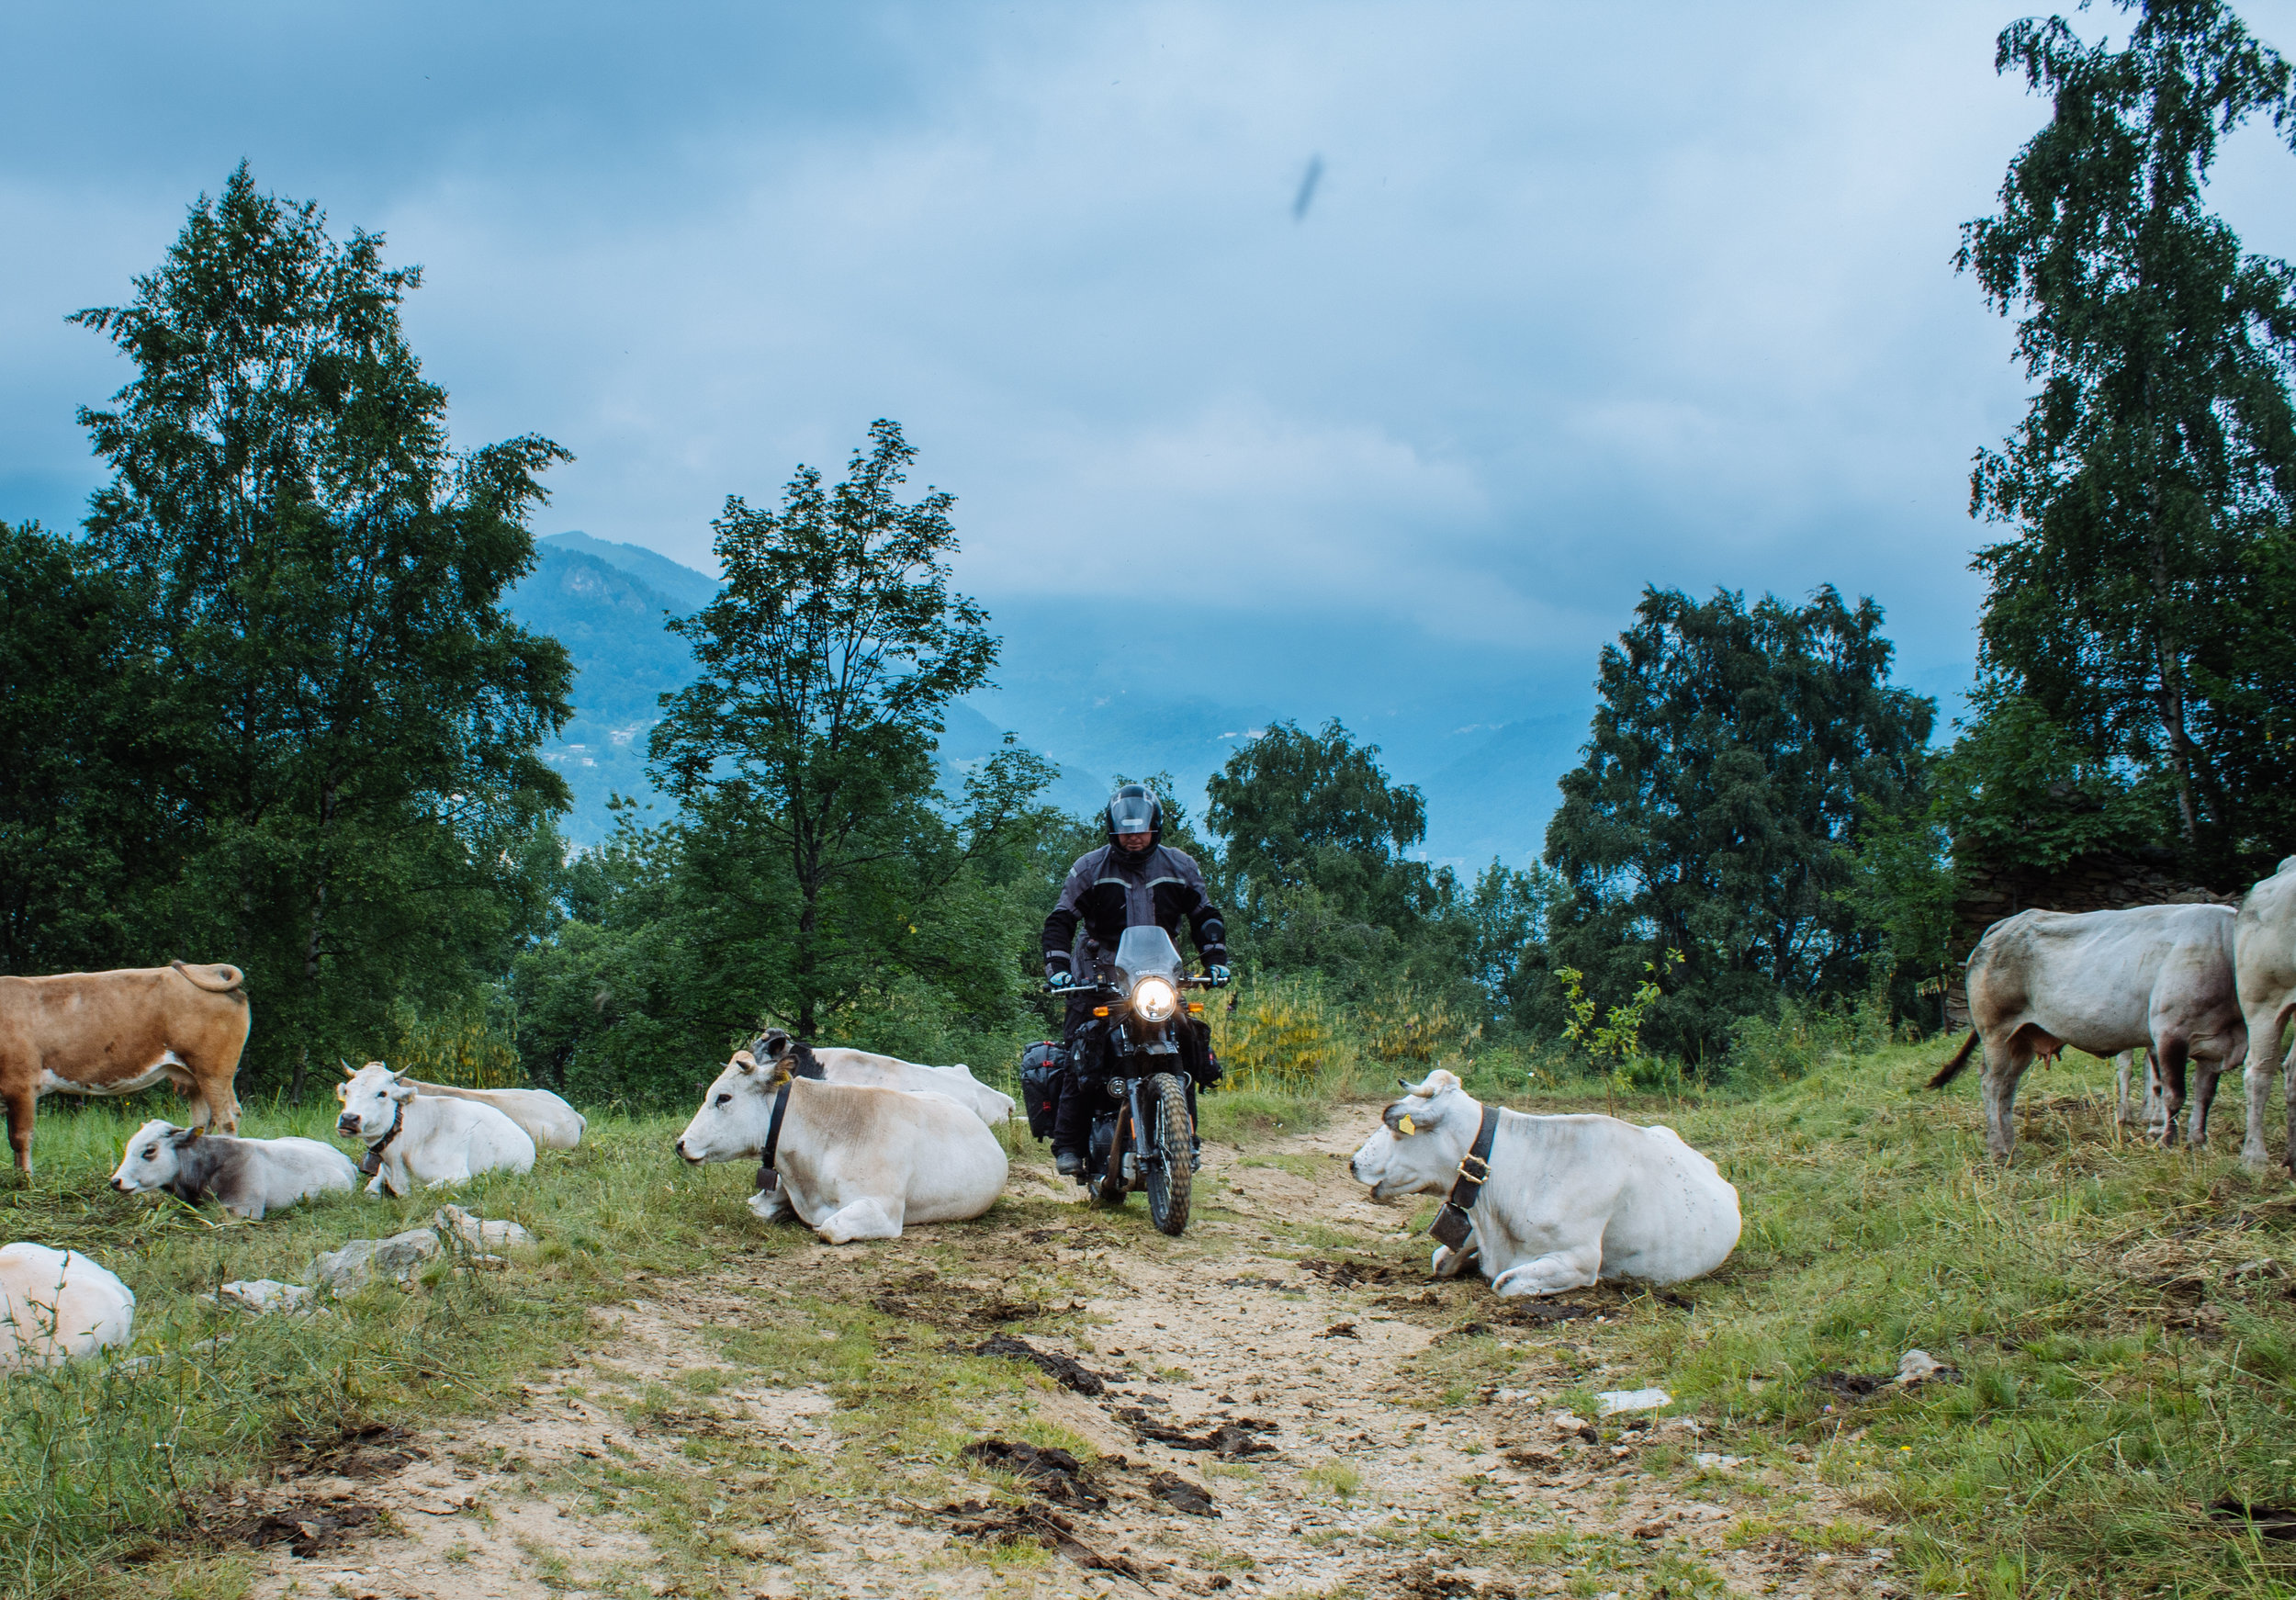 Cattle moves for nobody, not even motorbikes